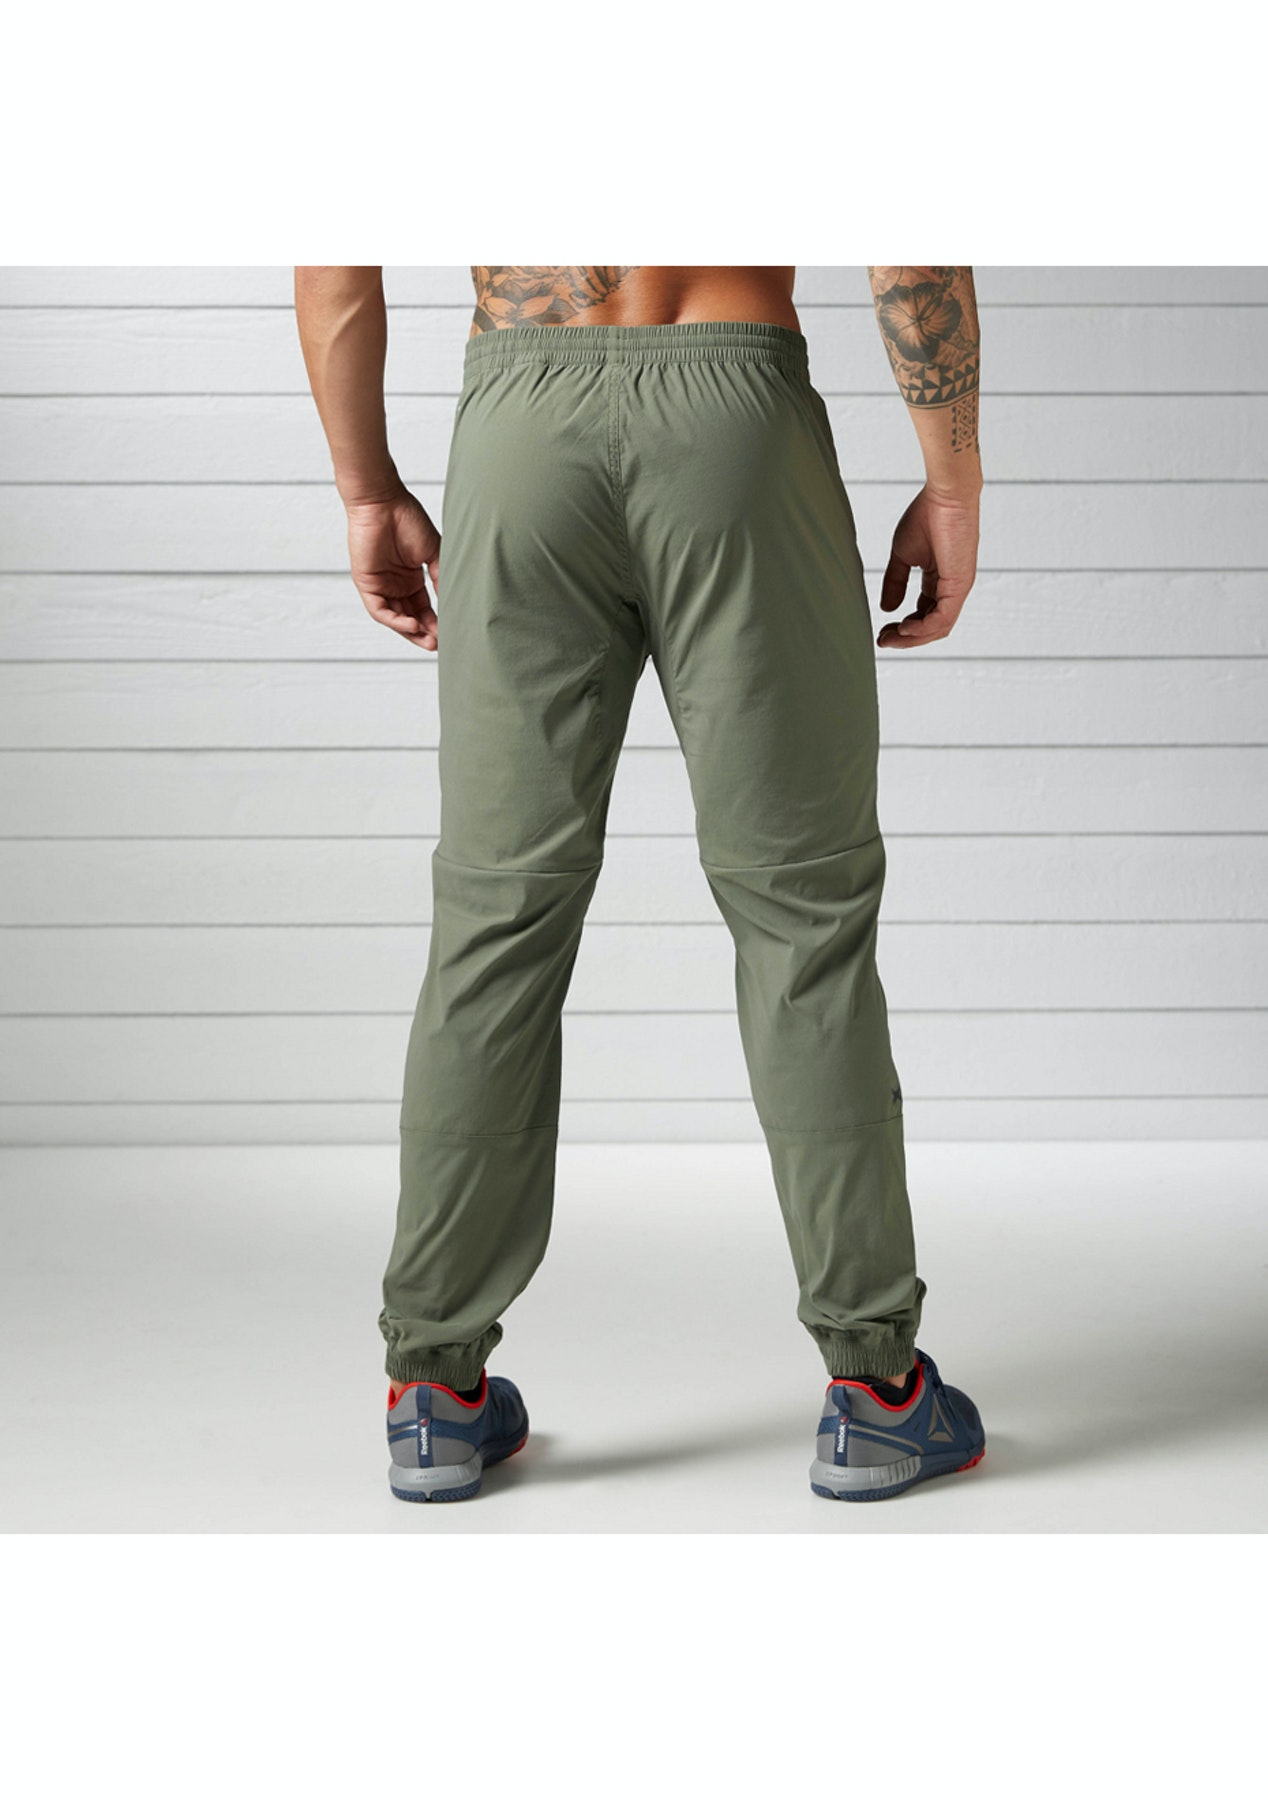 2a3033b92e8d Reebok Mens - Elite Woven Jogger Hungrn - Mens Warehouse - Onceit